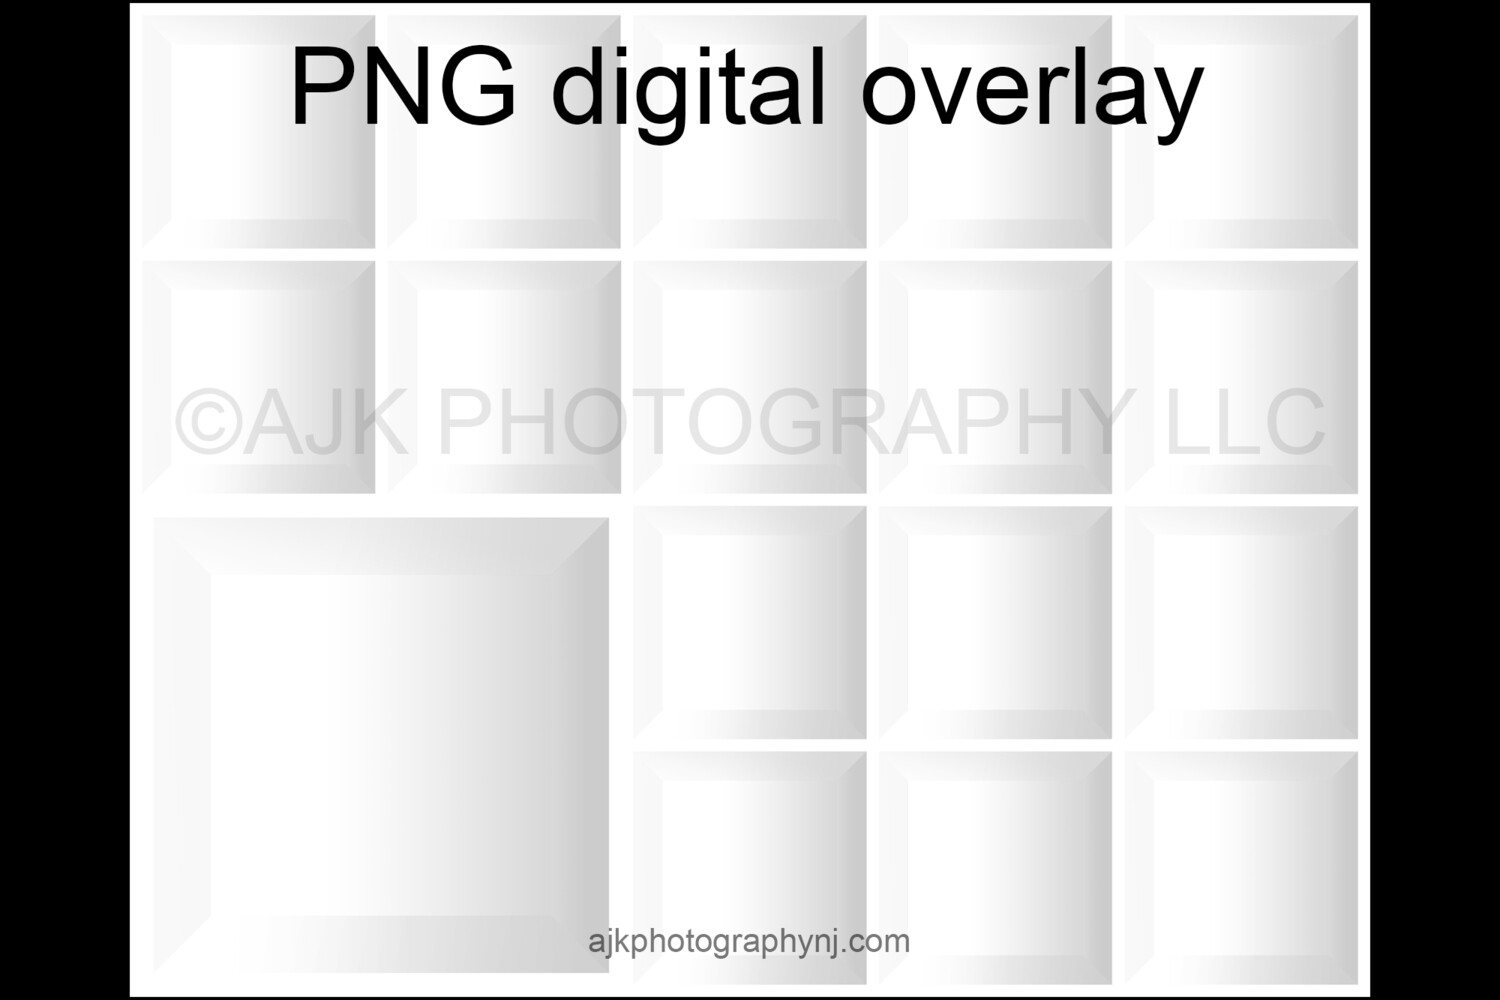 17 empty white boxes template, inside the box, 16 students and 1 teacher, class photo template, PNG Digital Overlay